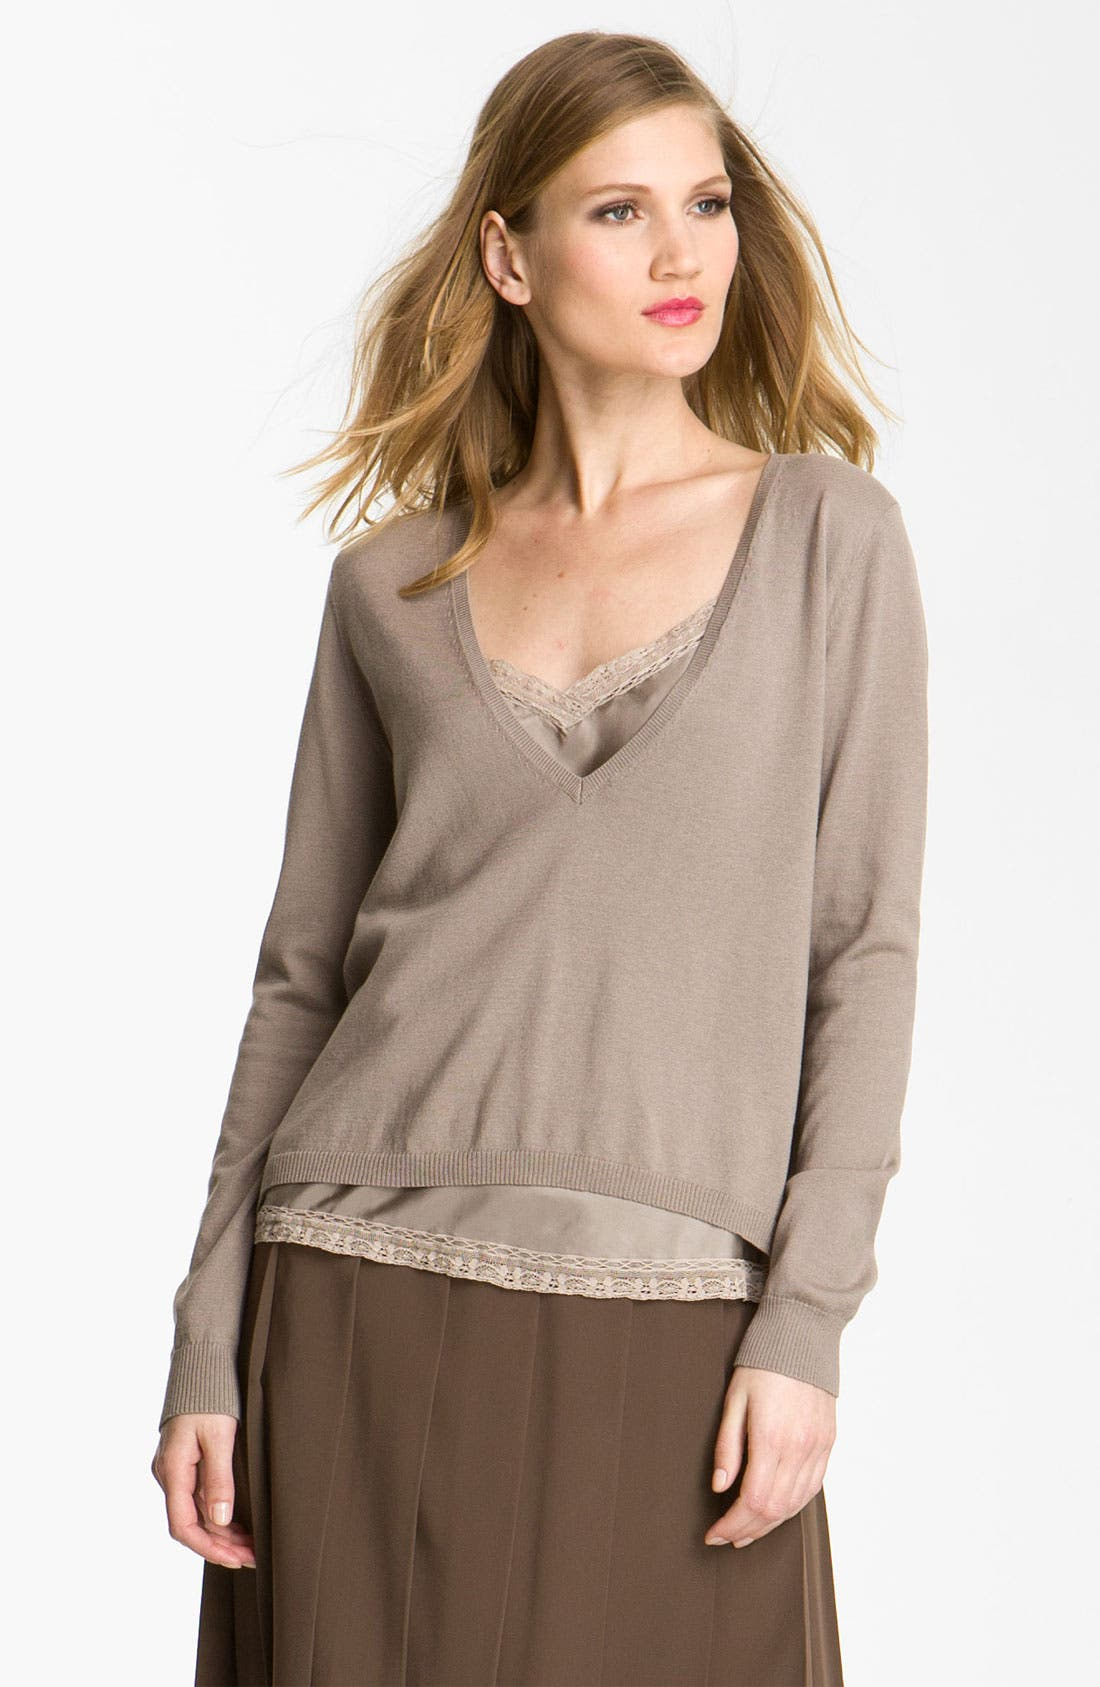 Main Image - Weekend Max Mara 'Opale' Sweater & Camisole